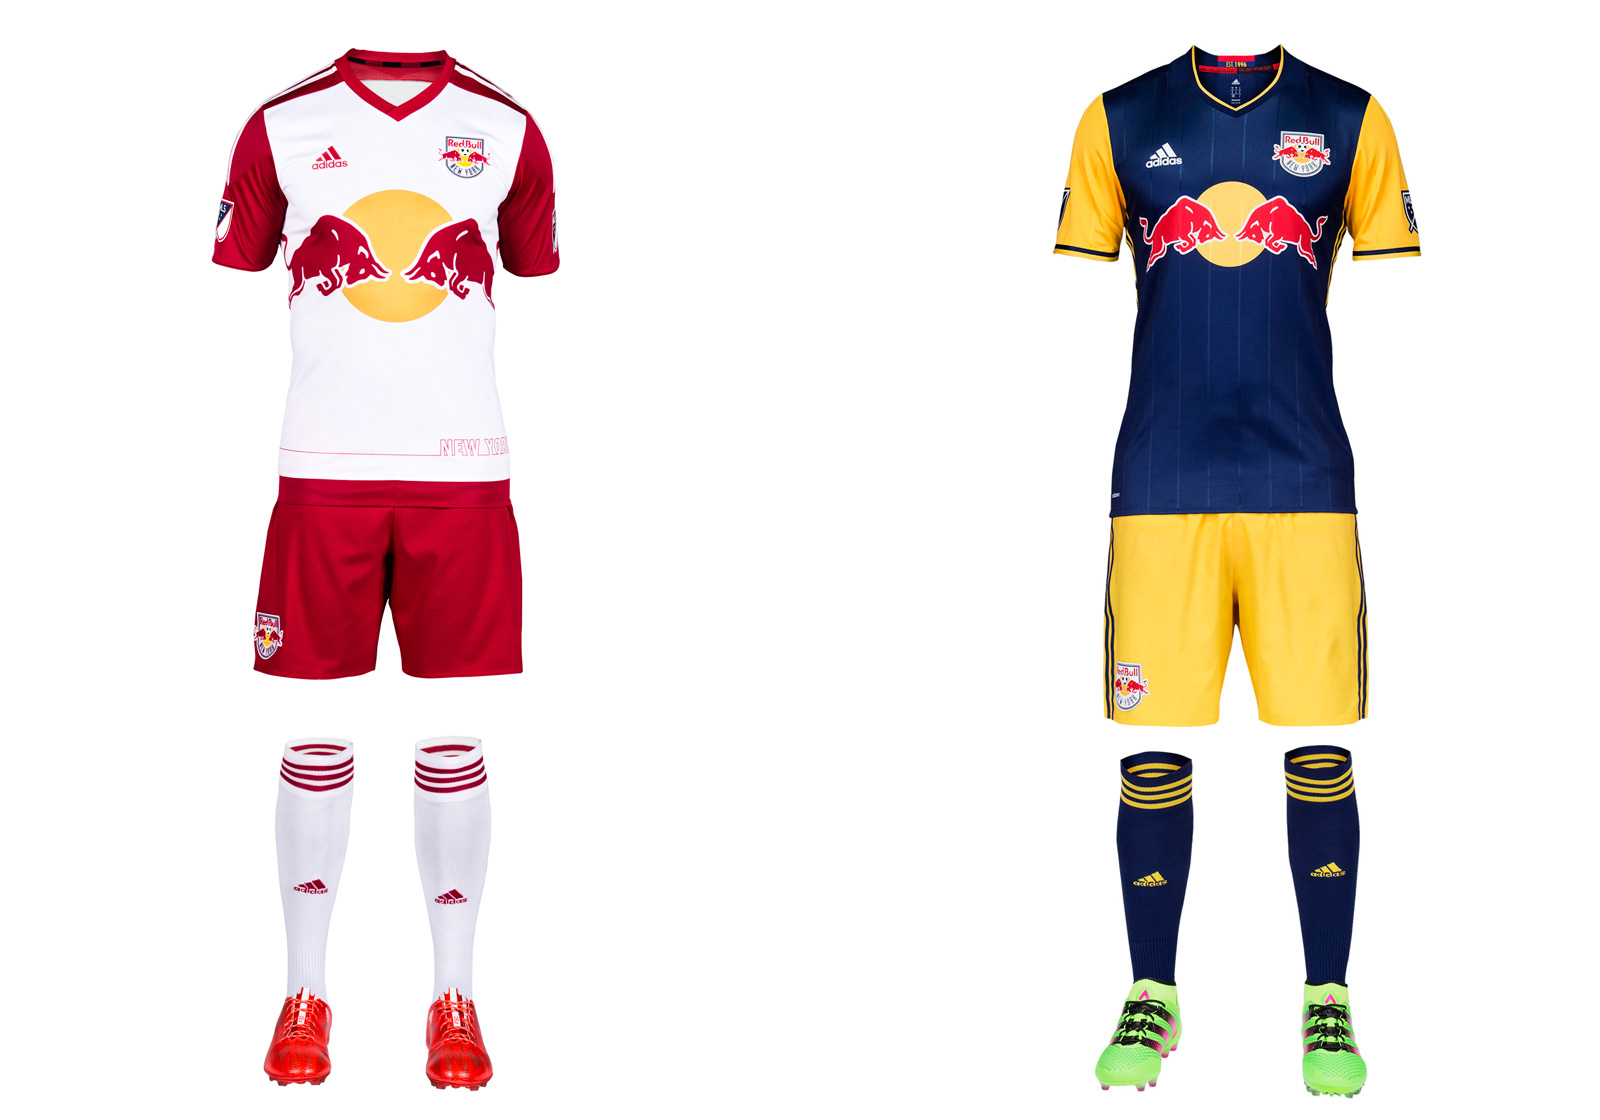 New York is red, except when it's navy blue and yellow. Despite some supporters' preference for a red away uniform, the Red Bulls are sticking with the colors they share with the parent company's teams in Leipzig and Salzburg. The new secondary, which now features yellow sleeves, certainly is eye-catching even if it doesn't stir fans' souls. NYRB's brand transcends the crest and kit, anyway. The stadium, history and the personalities who've donned MetroStar red-and-black and Red Bull red-and-white are what give this club its identity. NYRB sort of acknowledges that with the red-and-black necktape and MetroStars shield inside the new away jersey. The red-sleeved home kit is identical to last year's.